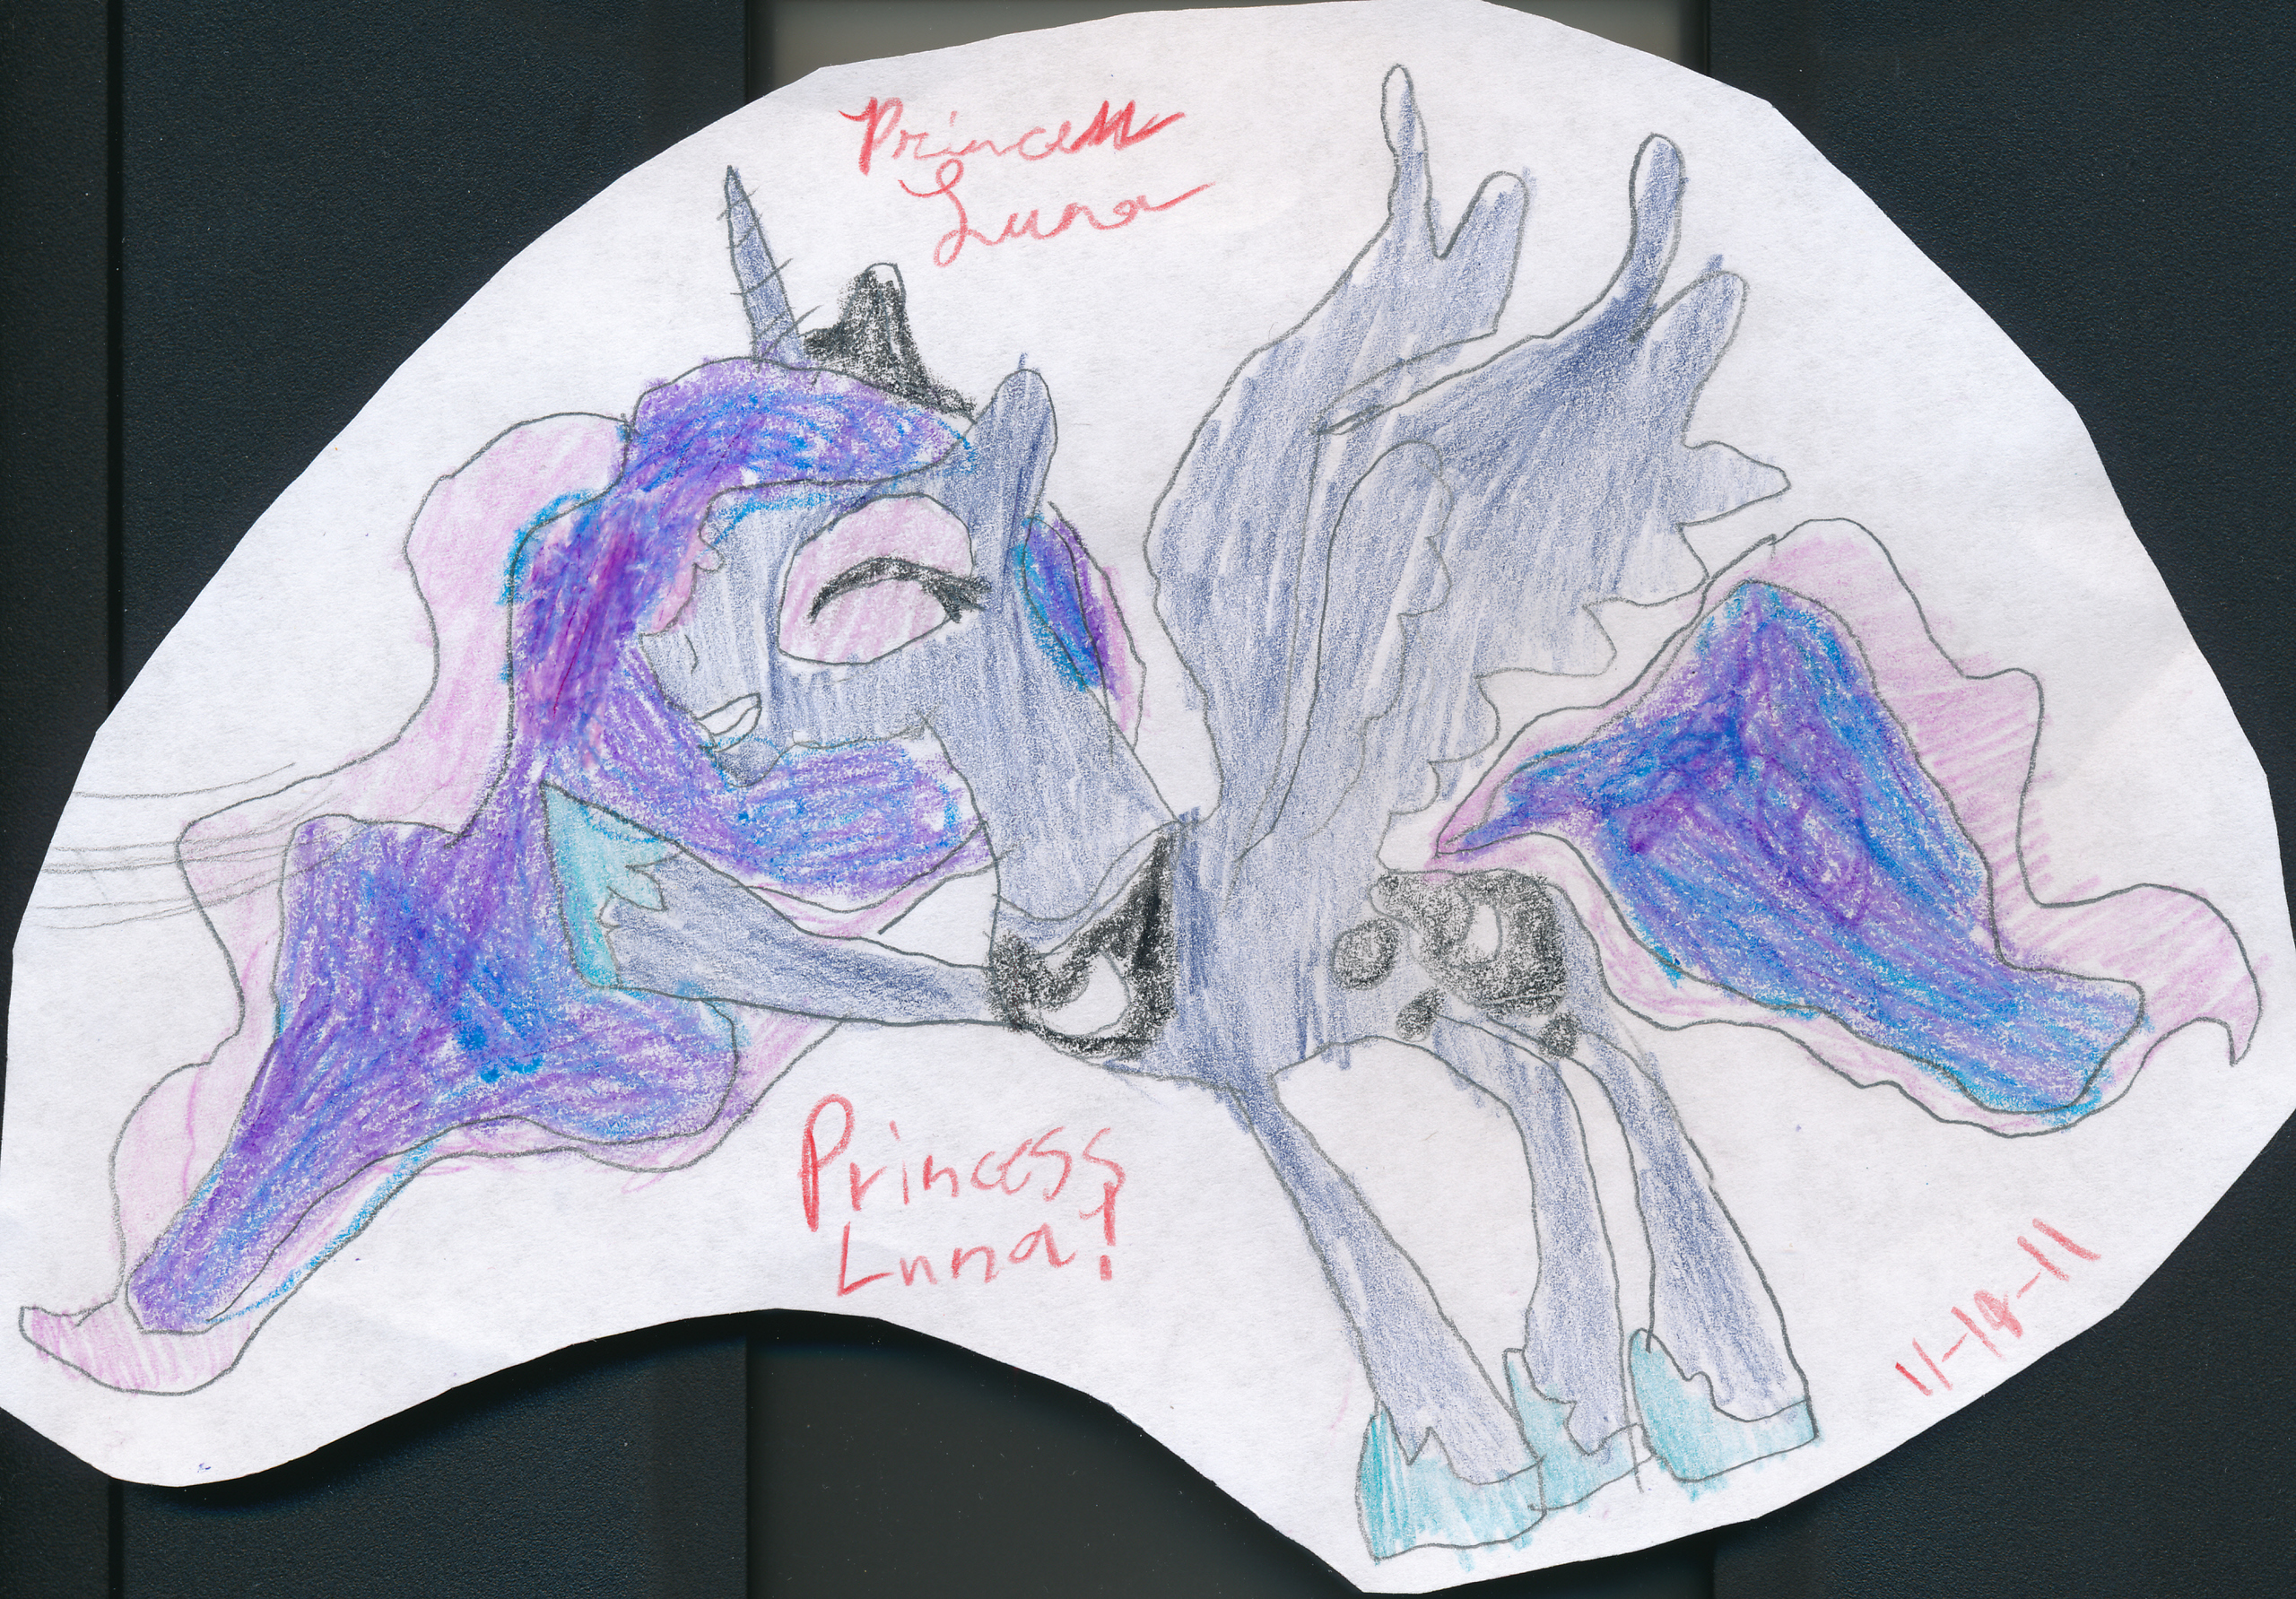 My drawing of Princess Luna